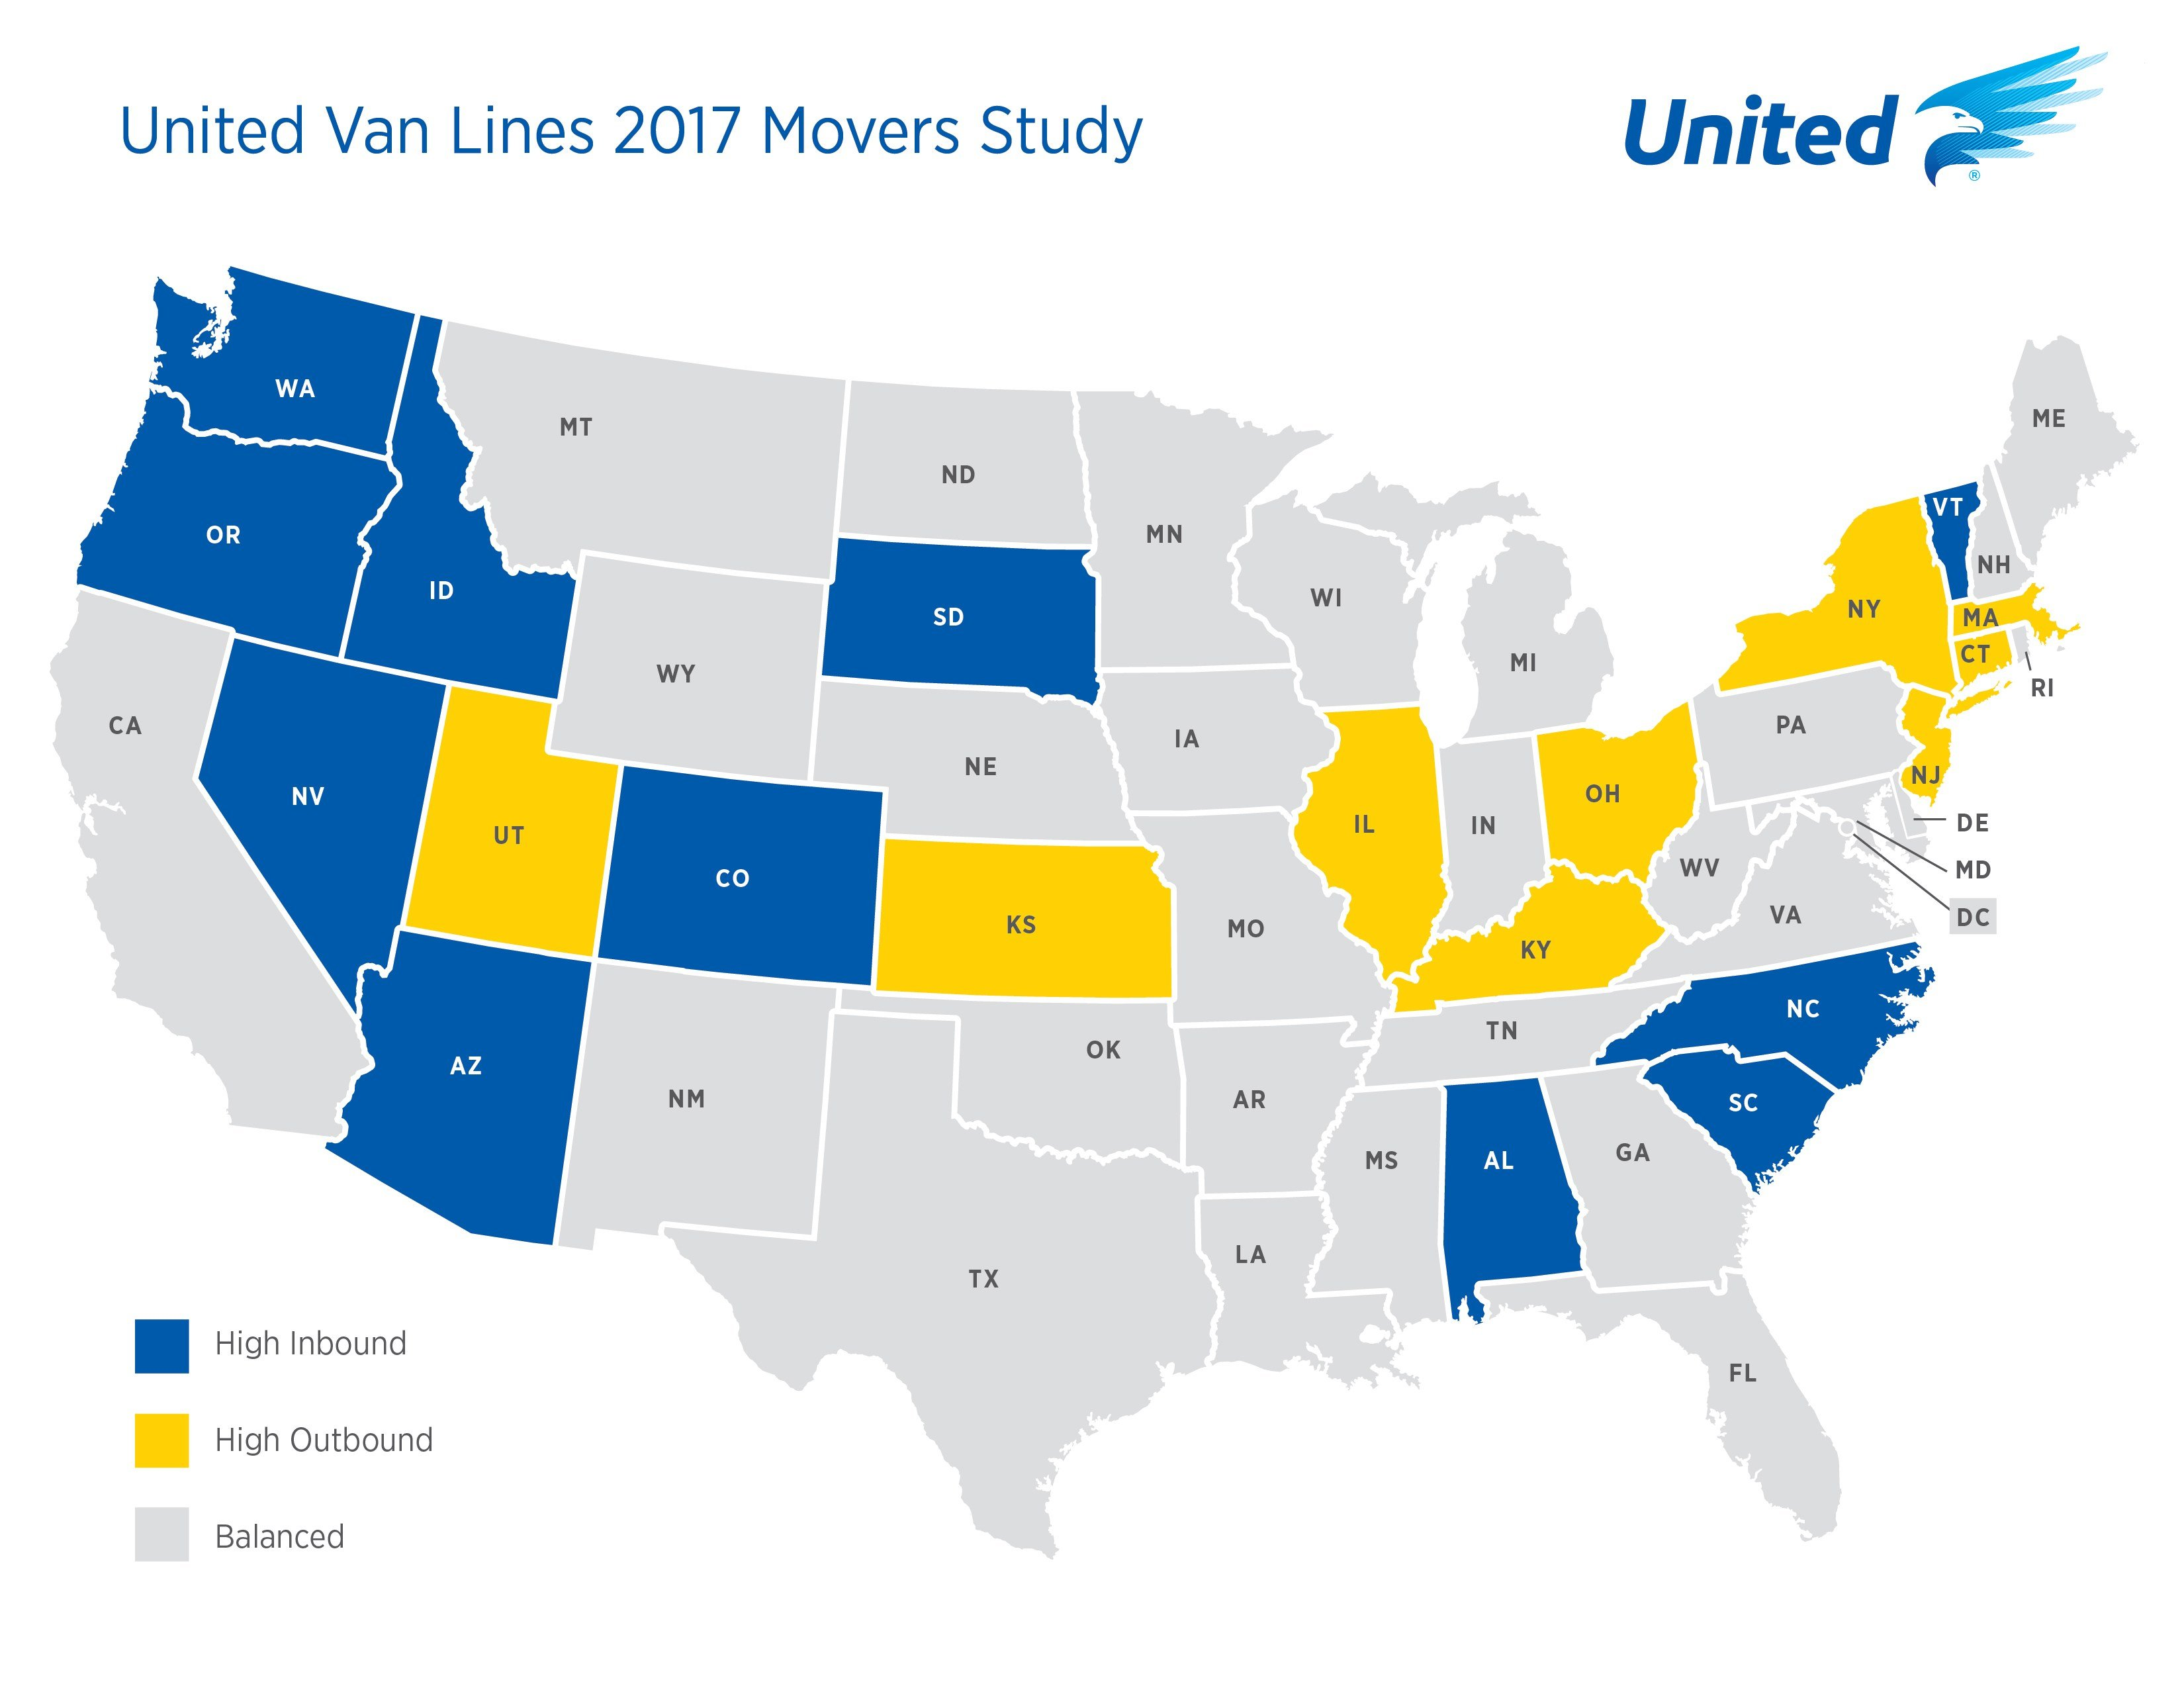 Connecticut Among the Top States to Move From